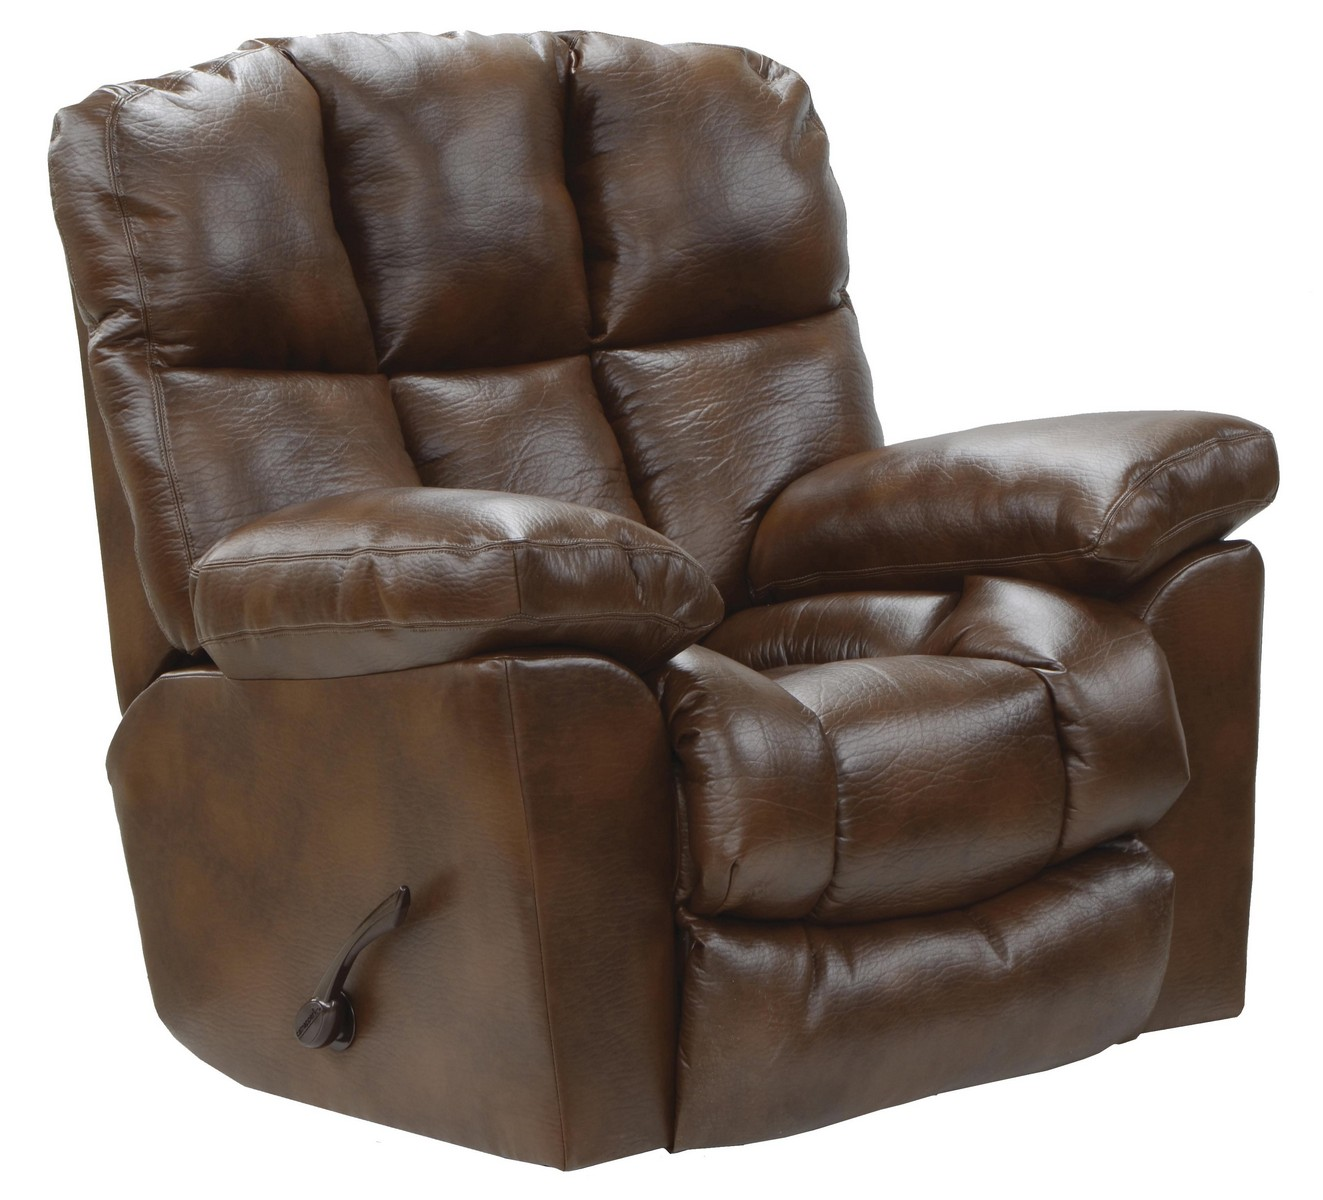 Catnapper griffey bonded leather chaise rocker recliner for Chaise x rocker